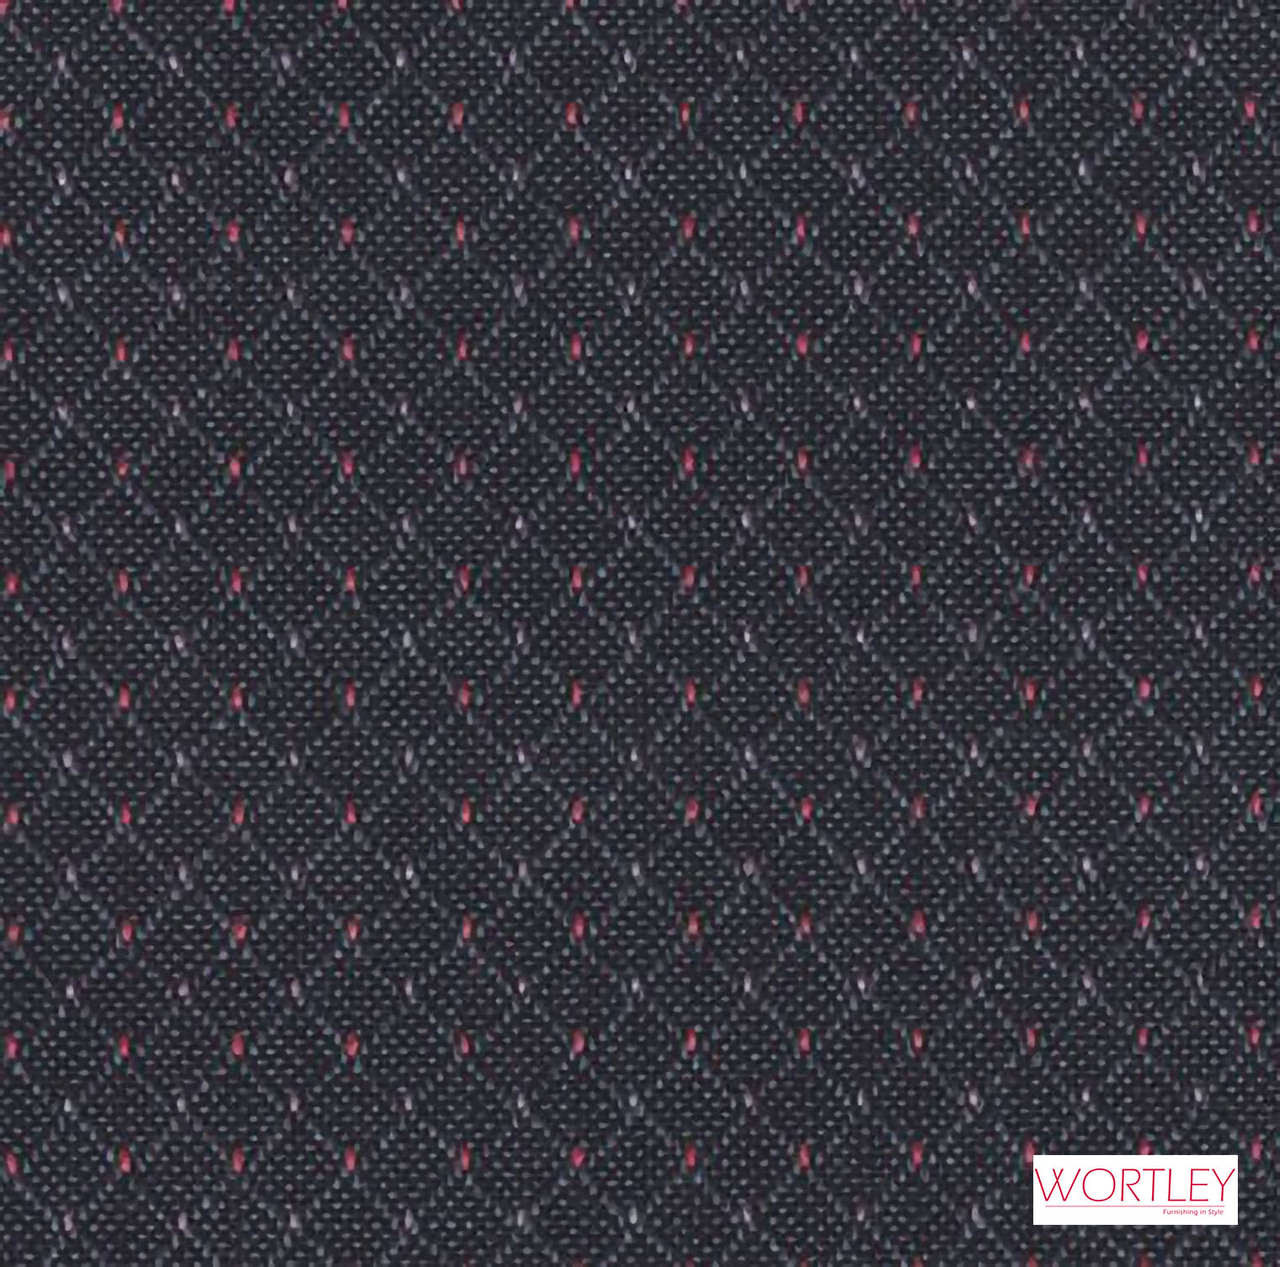 Wortley Group Hathaway Charcoal  | Upholstery Fabric - Grey, Black - Charcoal, Diaper, Foulard, Pattern, Pink, Purple, Small Scale, Synthetic, Commercial Use, Standard Width